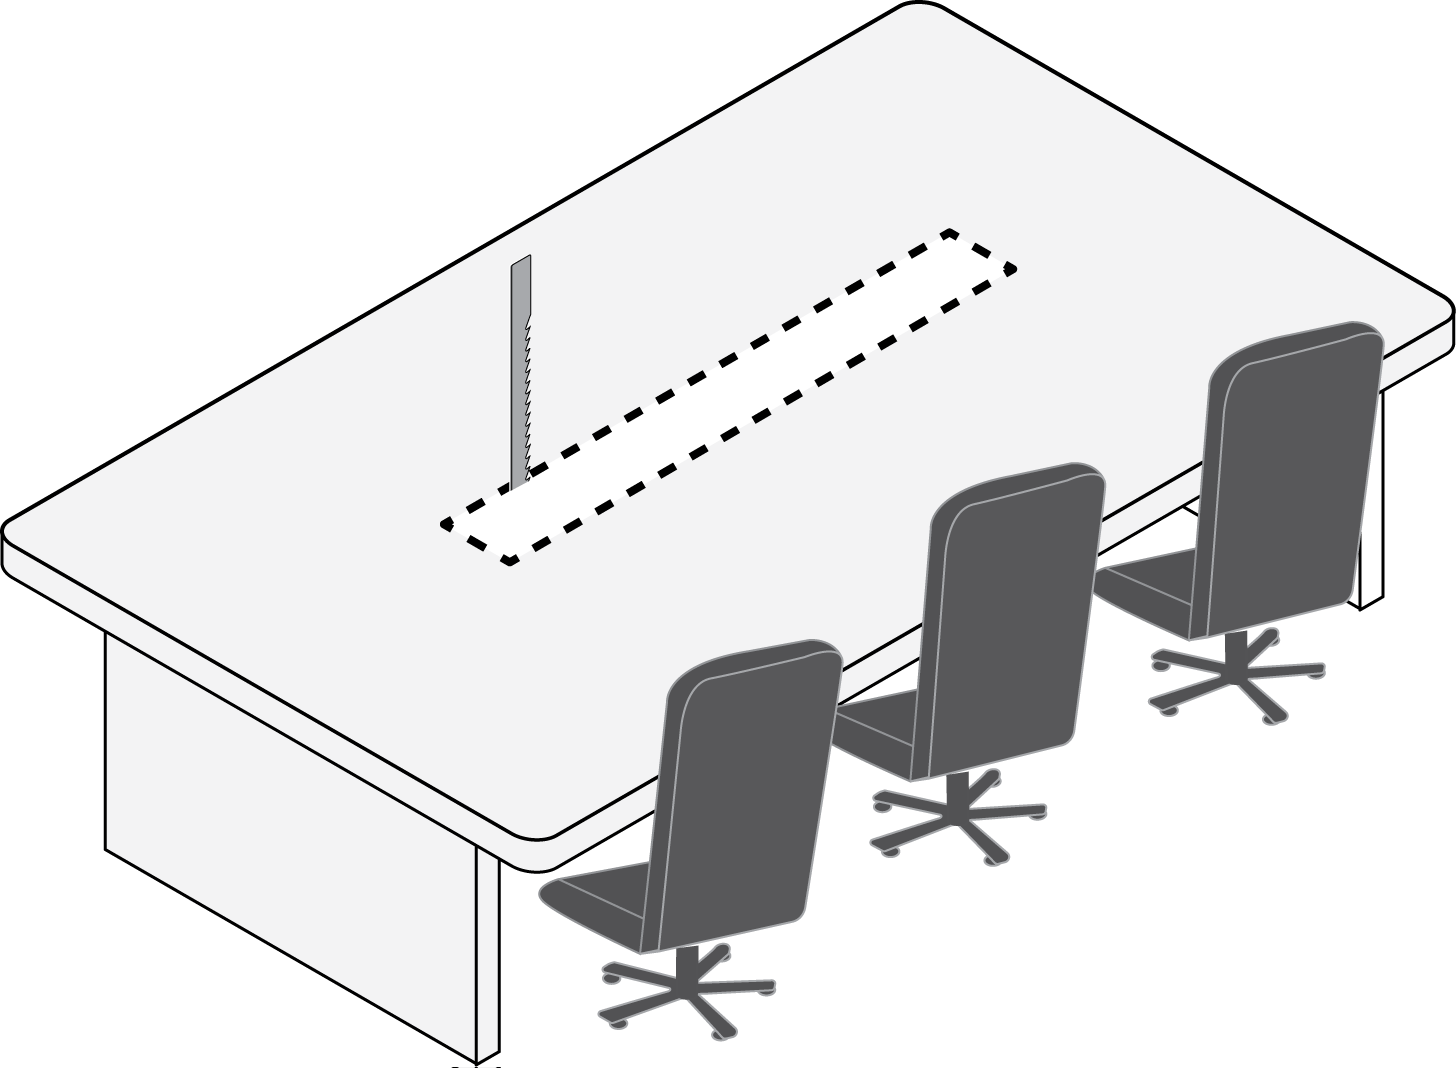 Illustration showing cutting a hole in a surface to install the A710-FM.